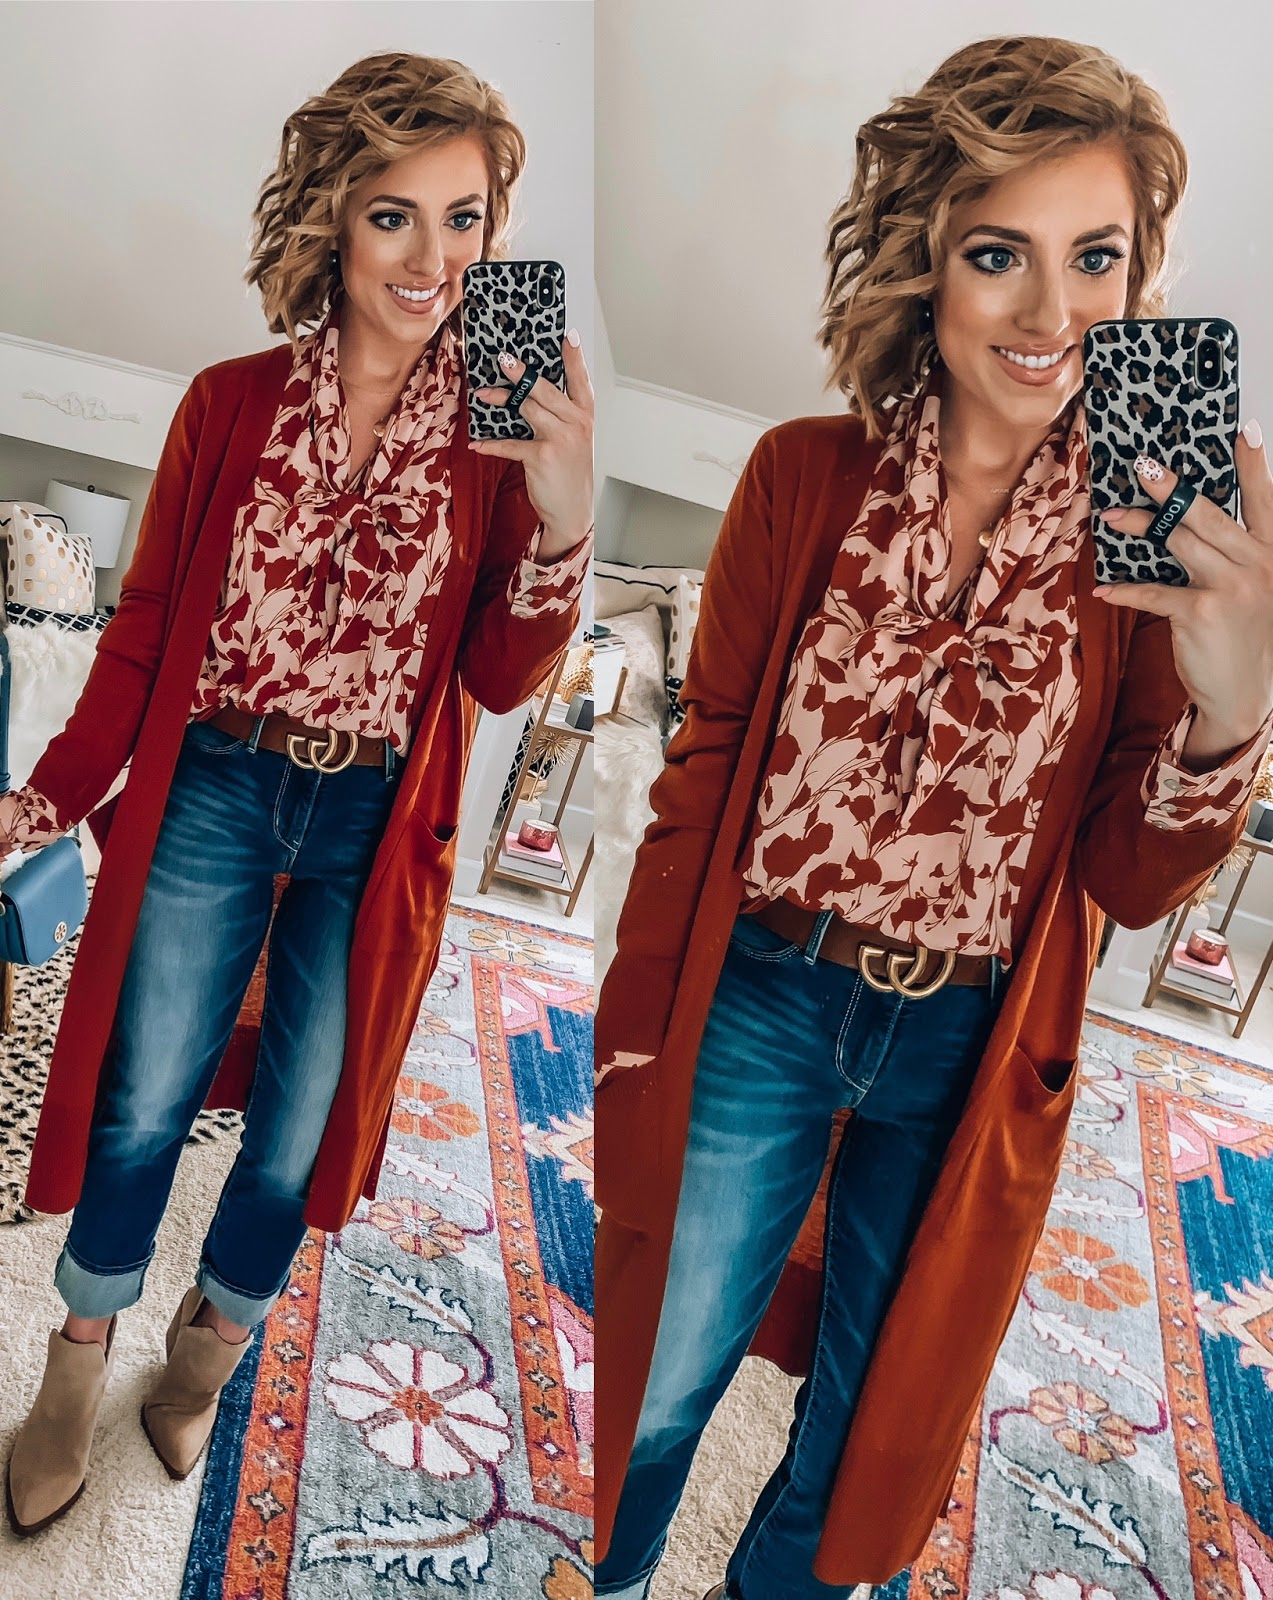 Target Fall Finds: Part One - Under $30 Blush/Rust Floral Blouse, Under $30 Rust Cardigan + Under $30 Jeans - Something Delightful Blog